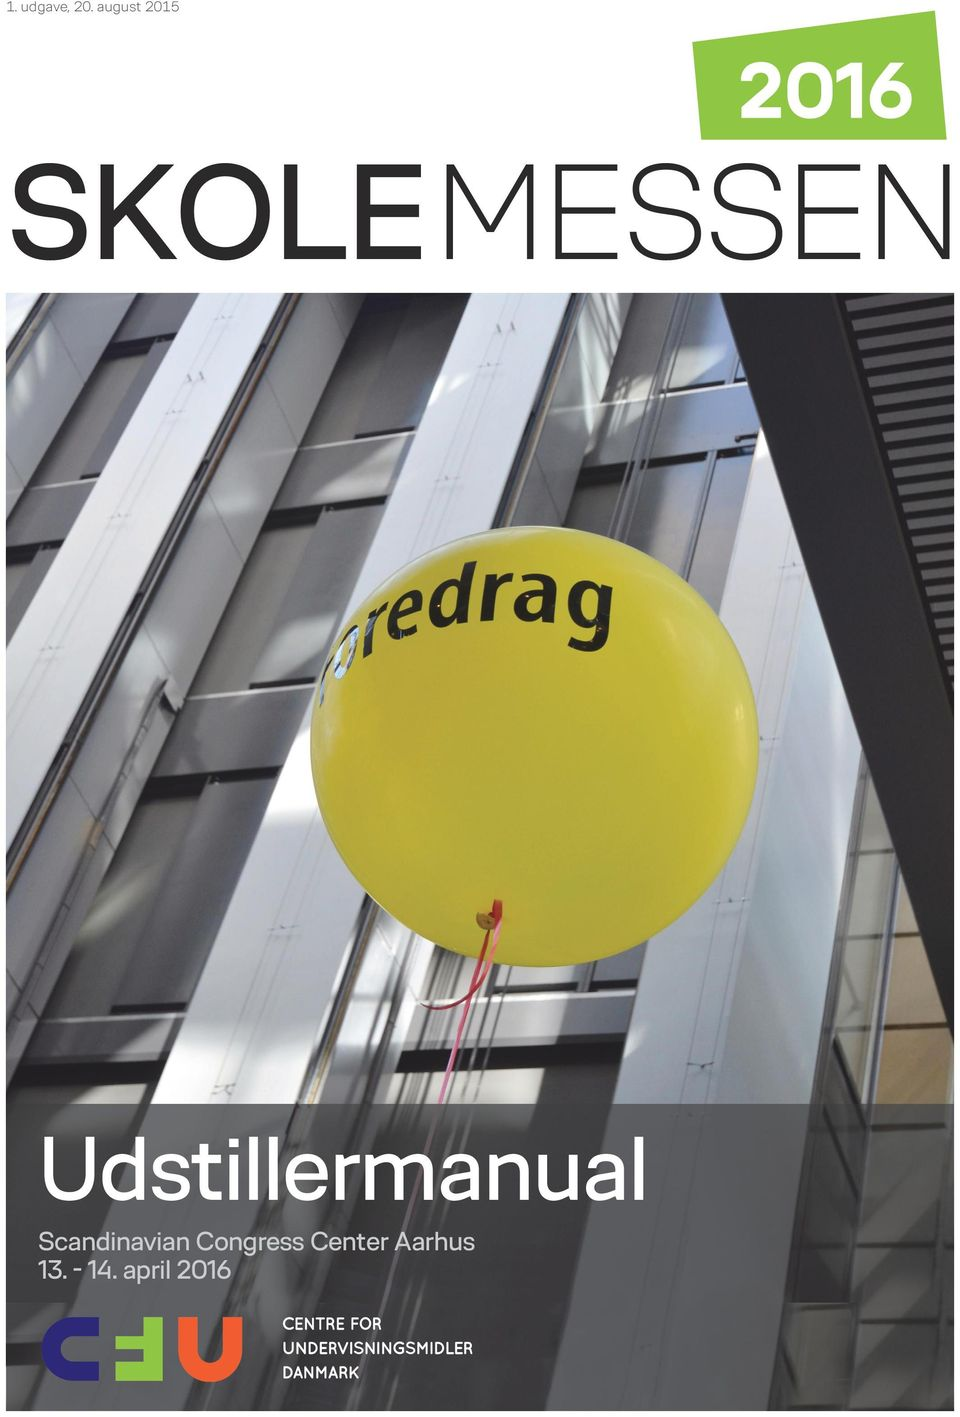 Udstillermanual